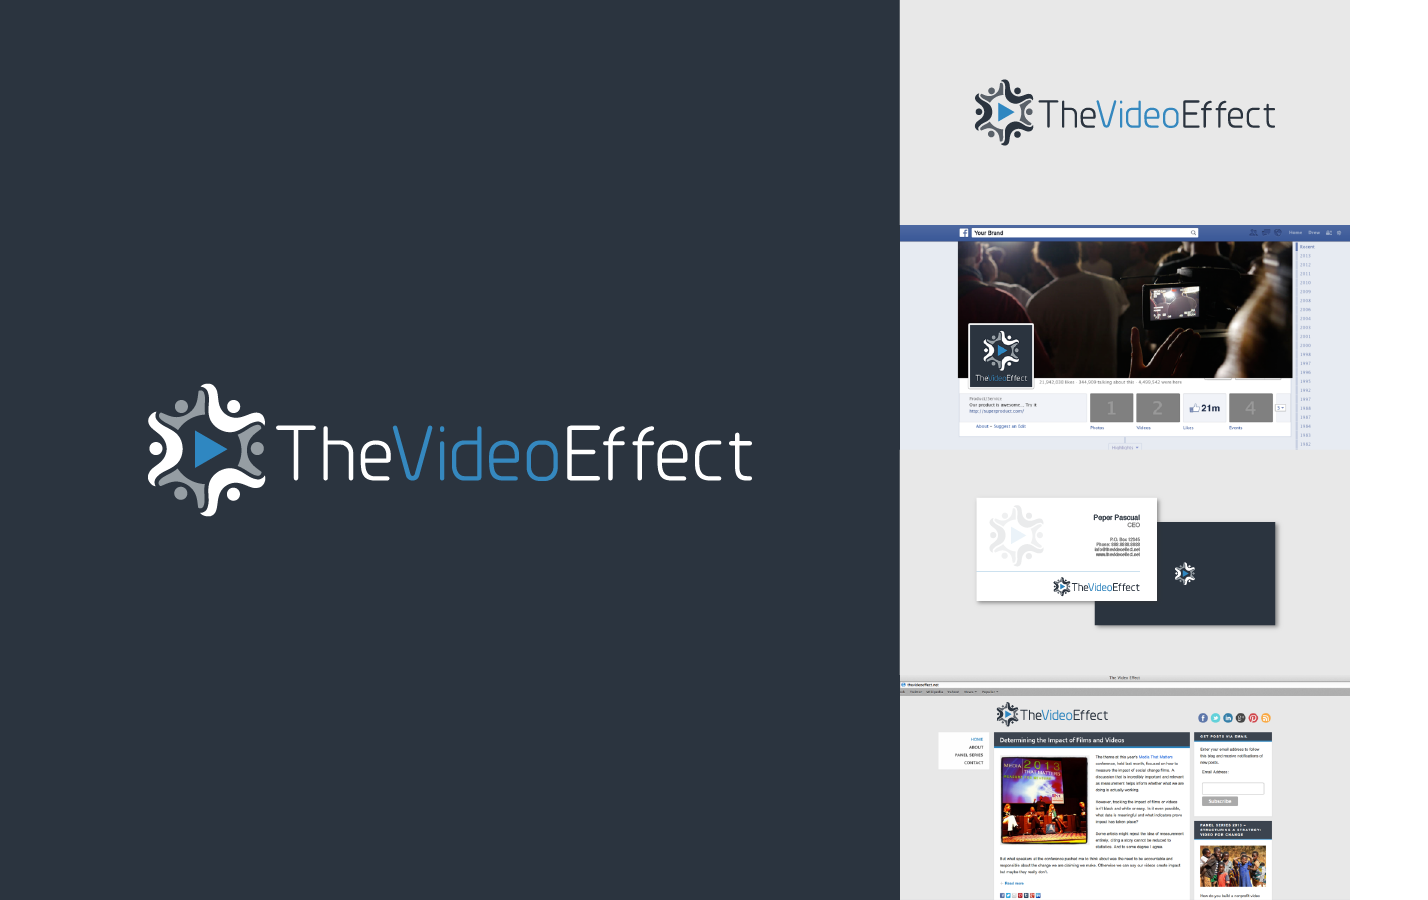 Create a simple and elegant logo design for The Video Effect